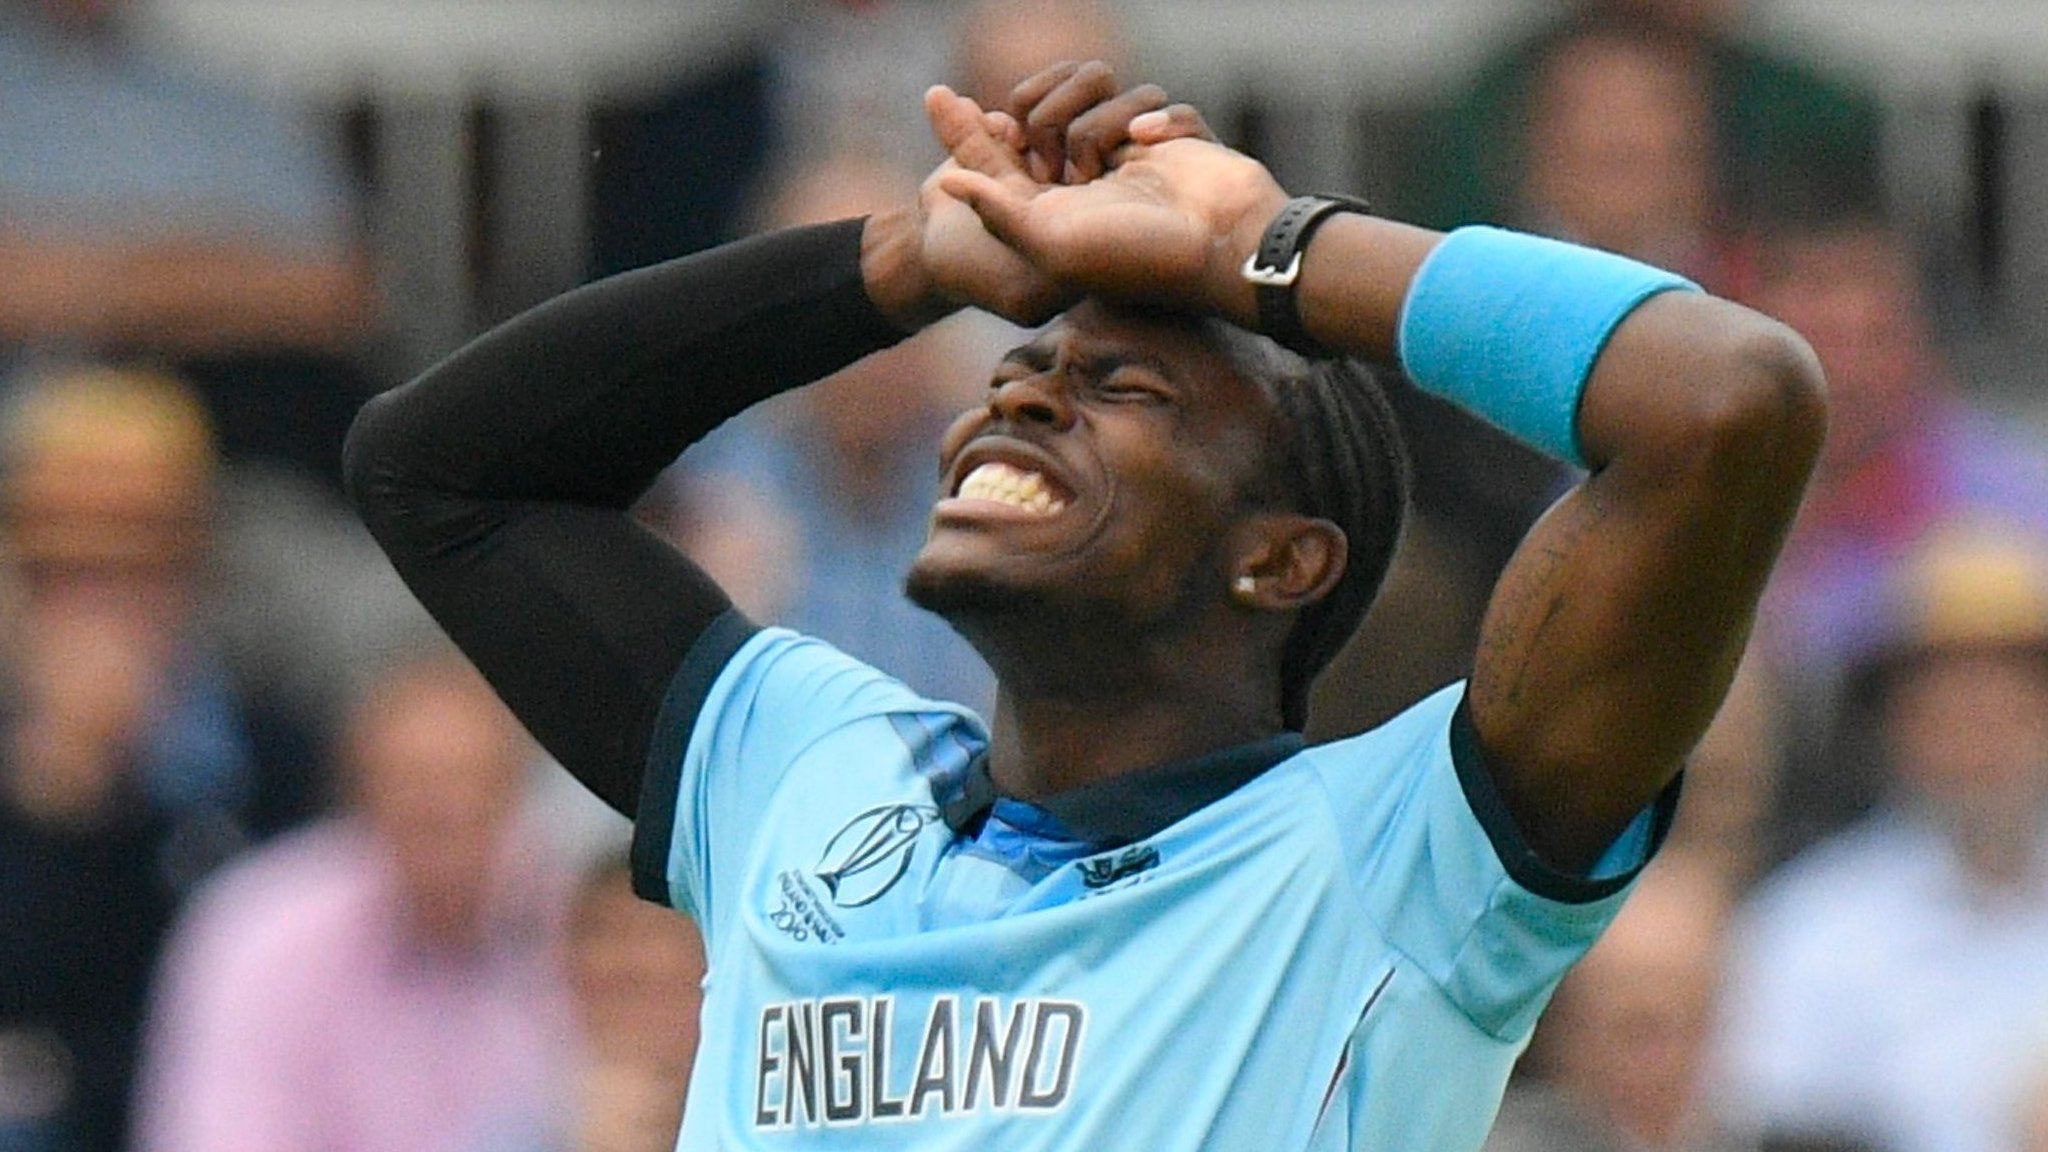 Cricket World Cup: What does Australia loss mean for England's World Cup chances?